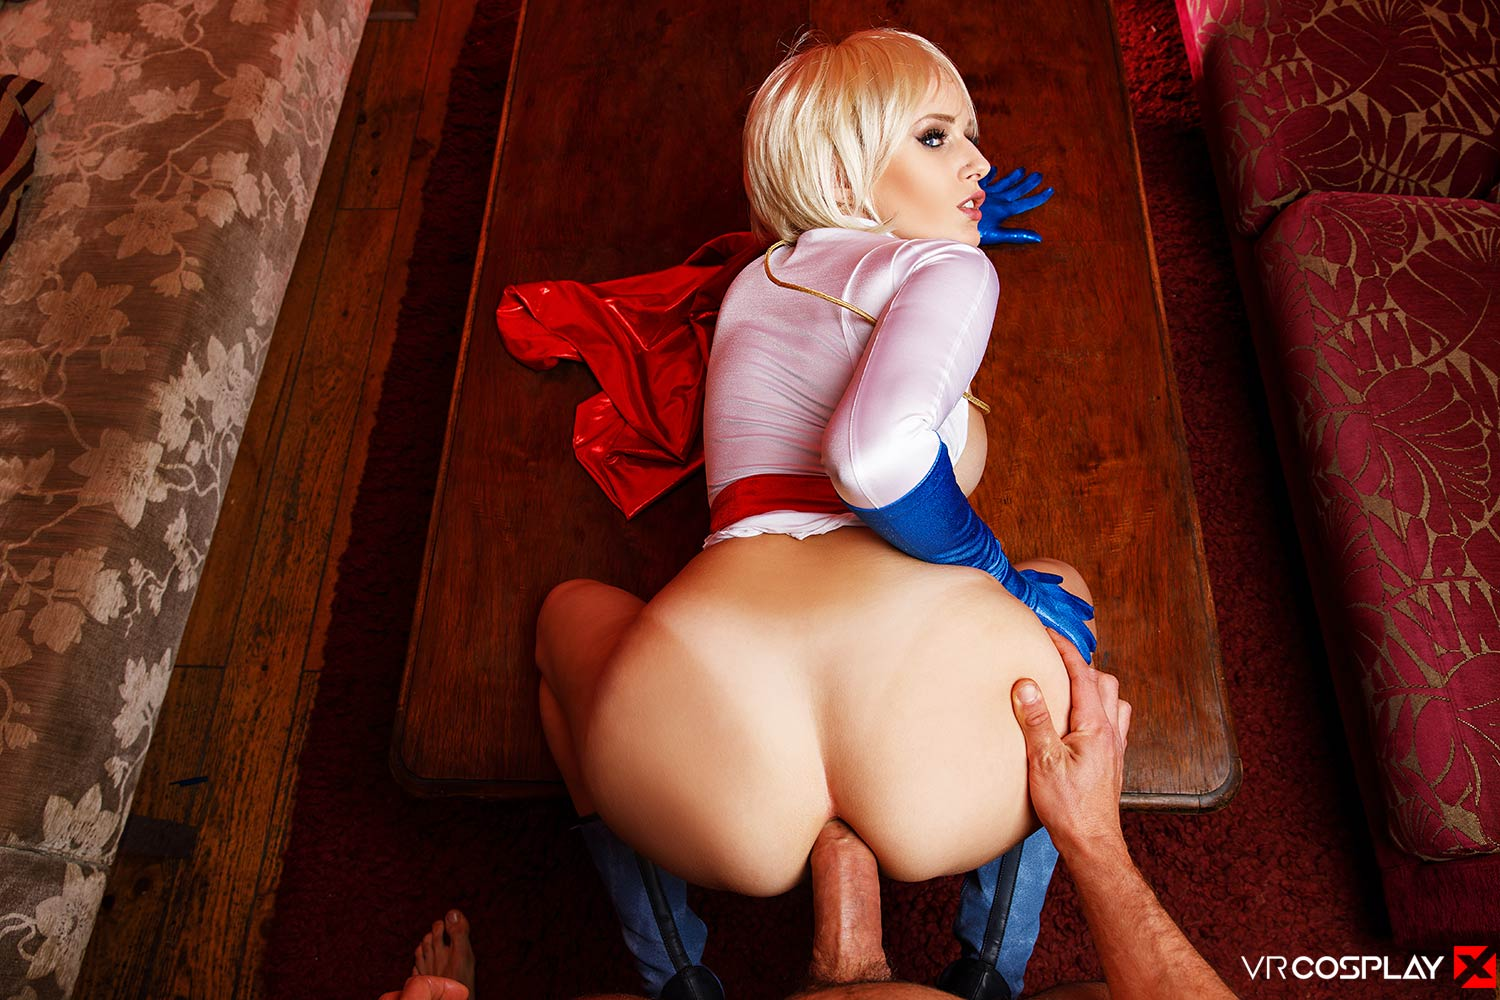 girls-pics-power-girl-nue-simpson